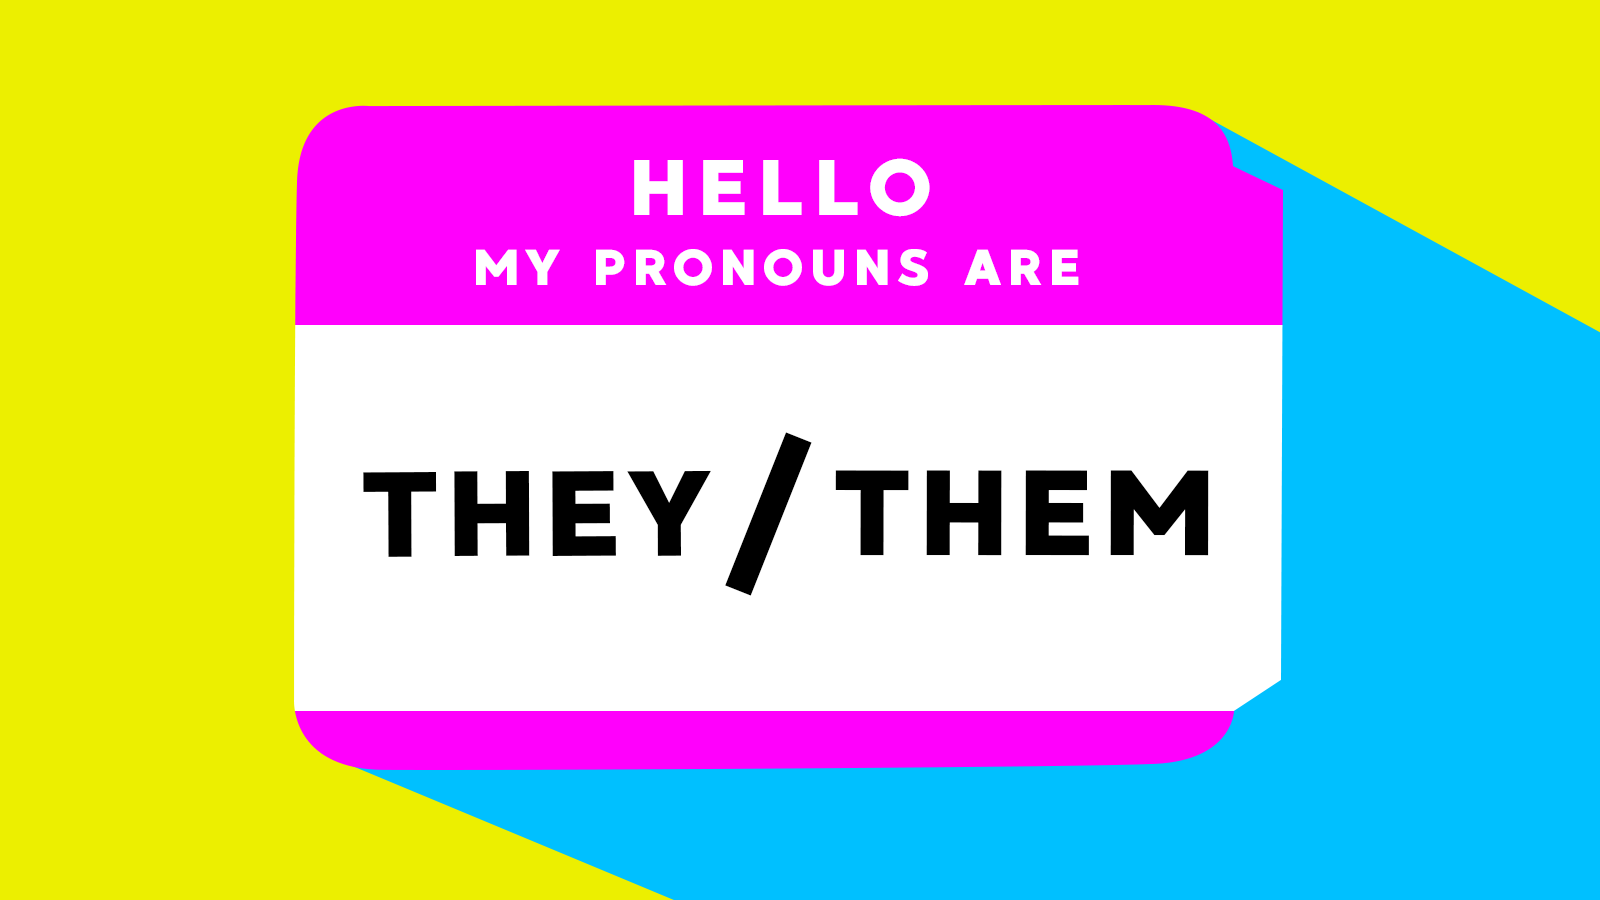 how to respectfully use gender neutral pronouns in the office ladders